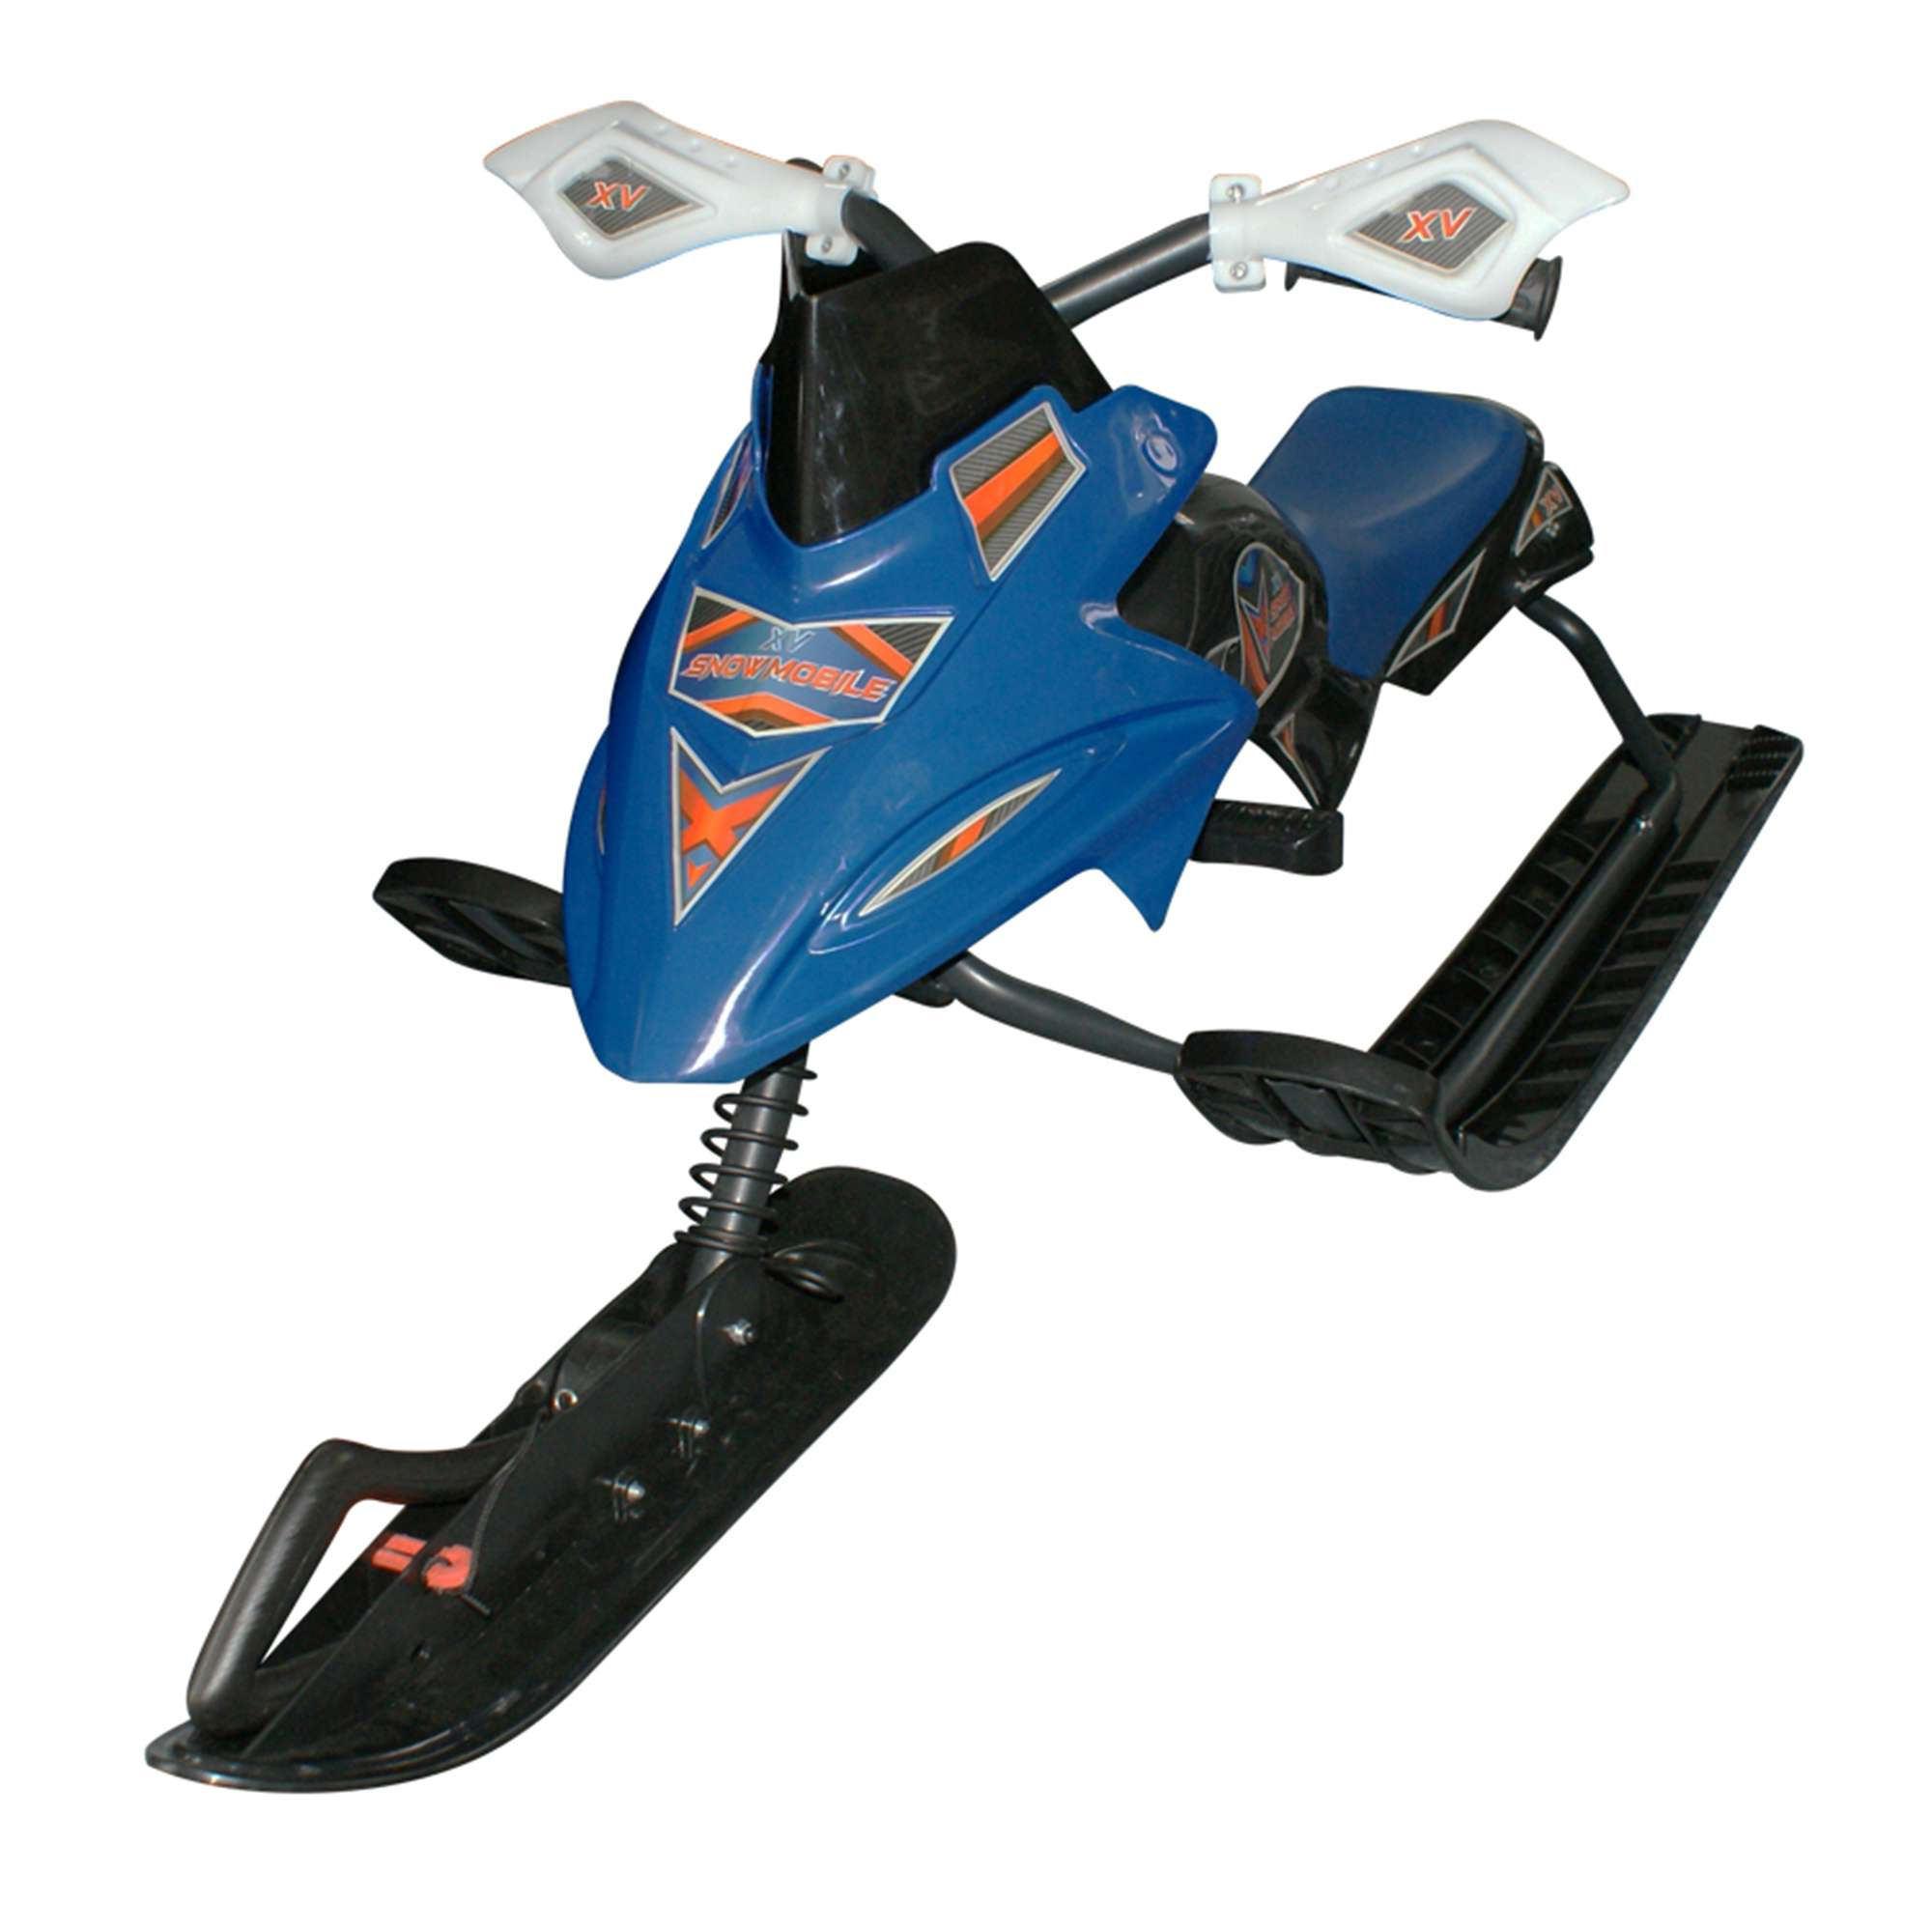 BOYZ TOYS XV Snow Mobile